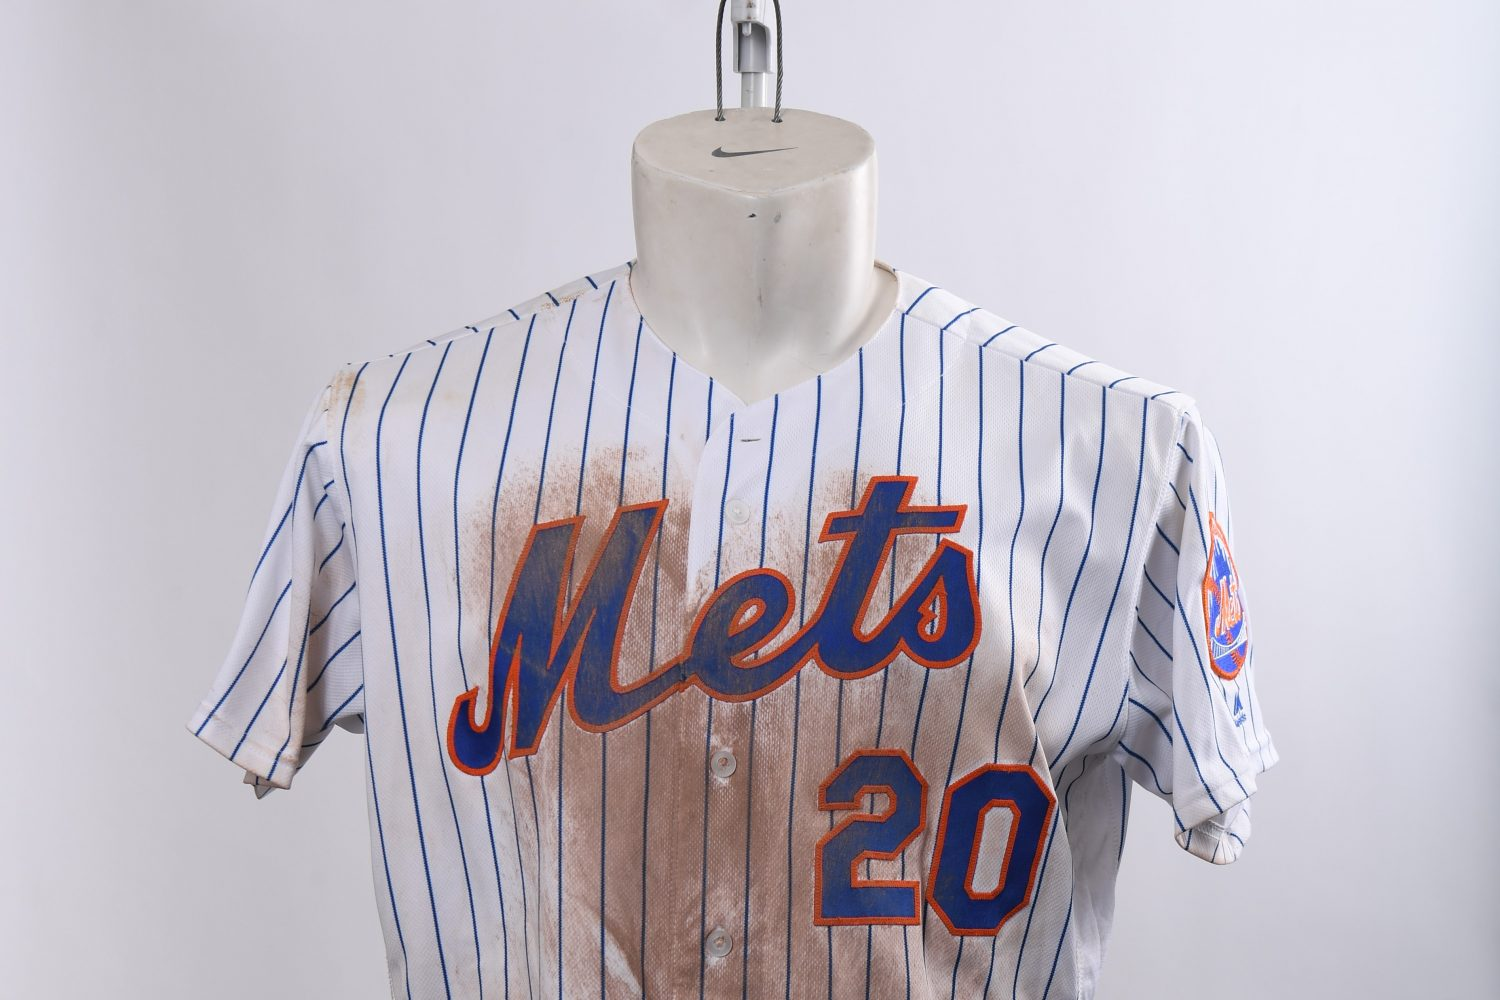 Pete Alonso Jersey Worn for Two Records